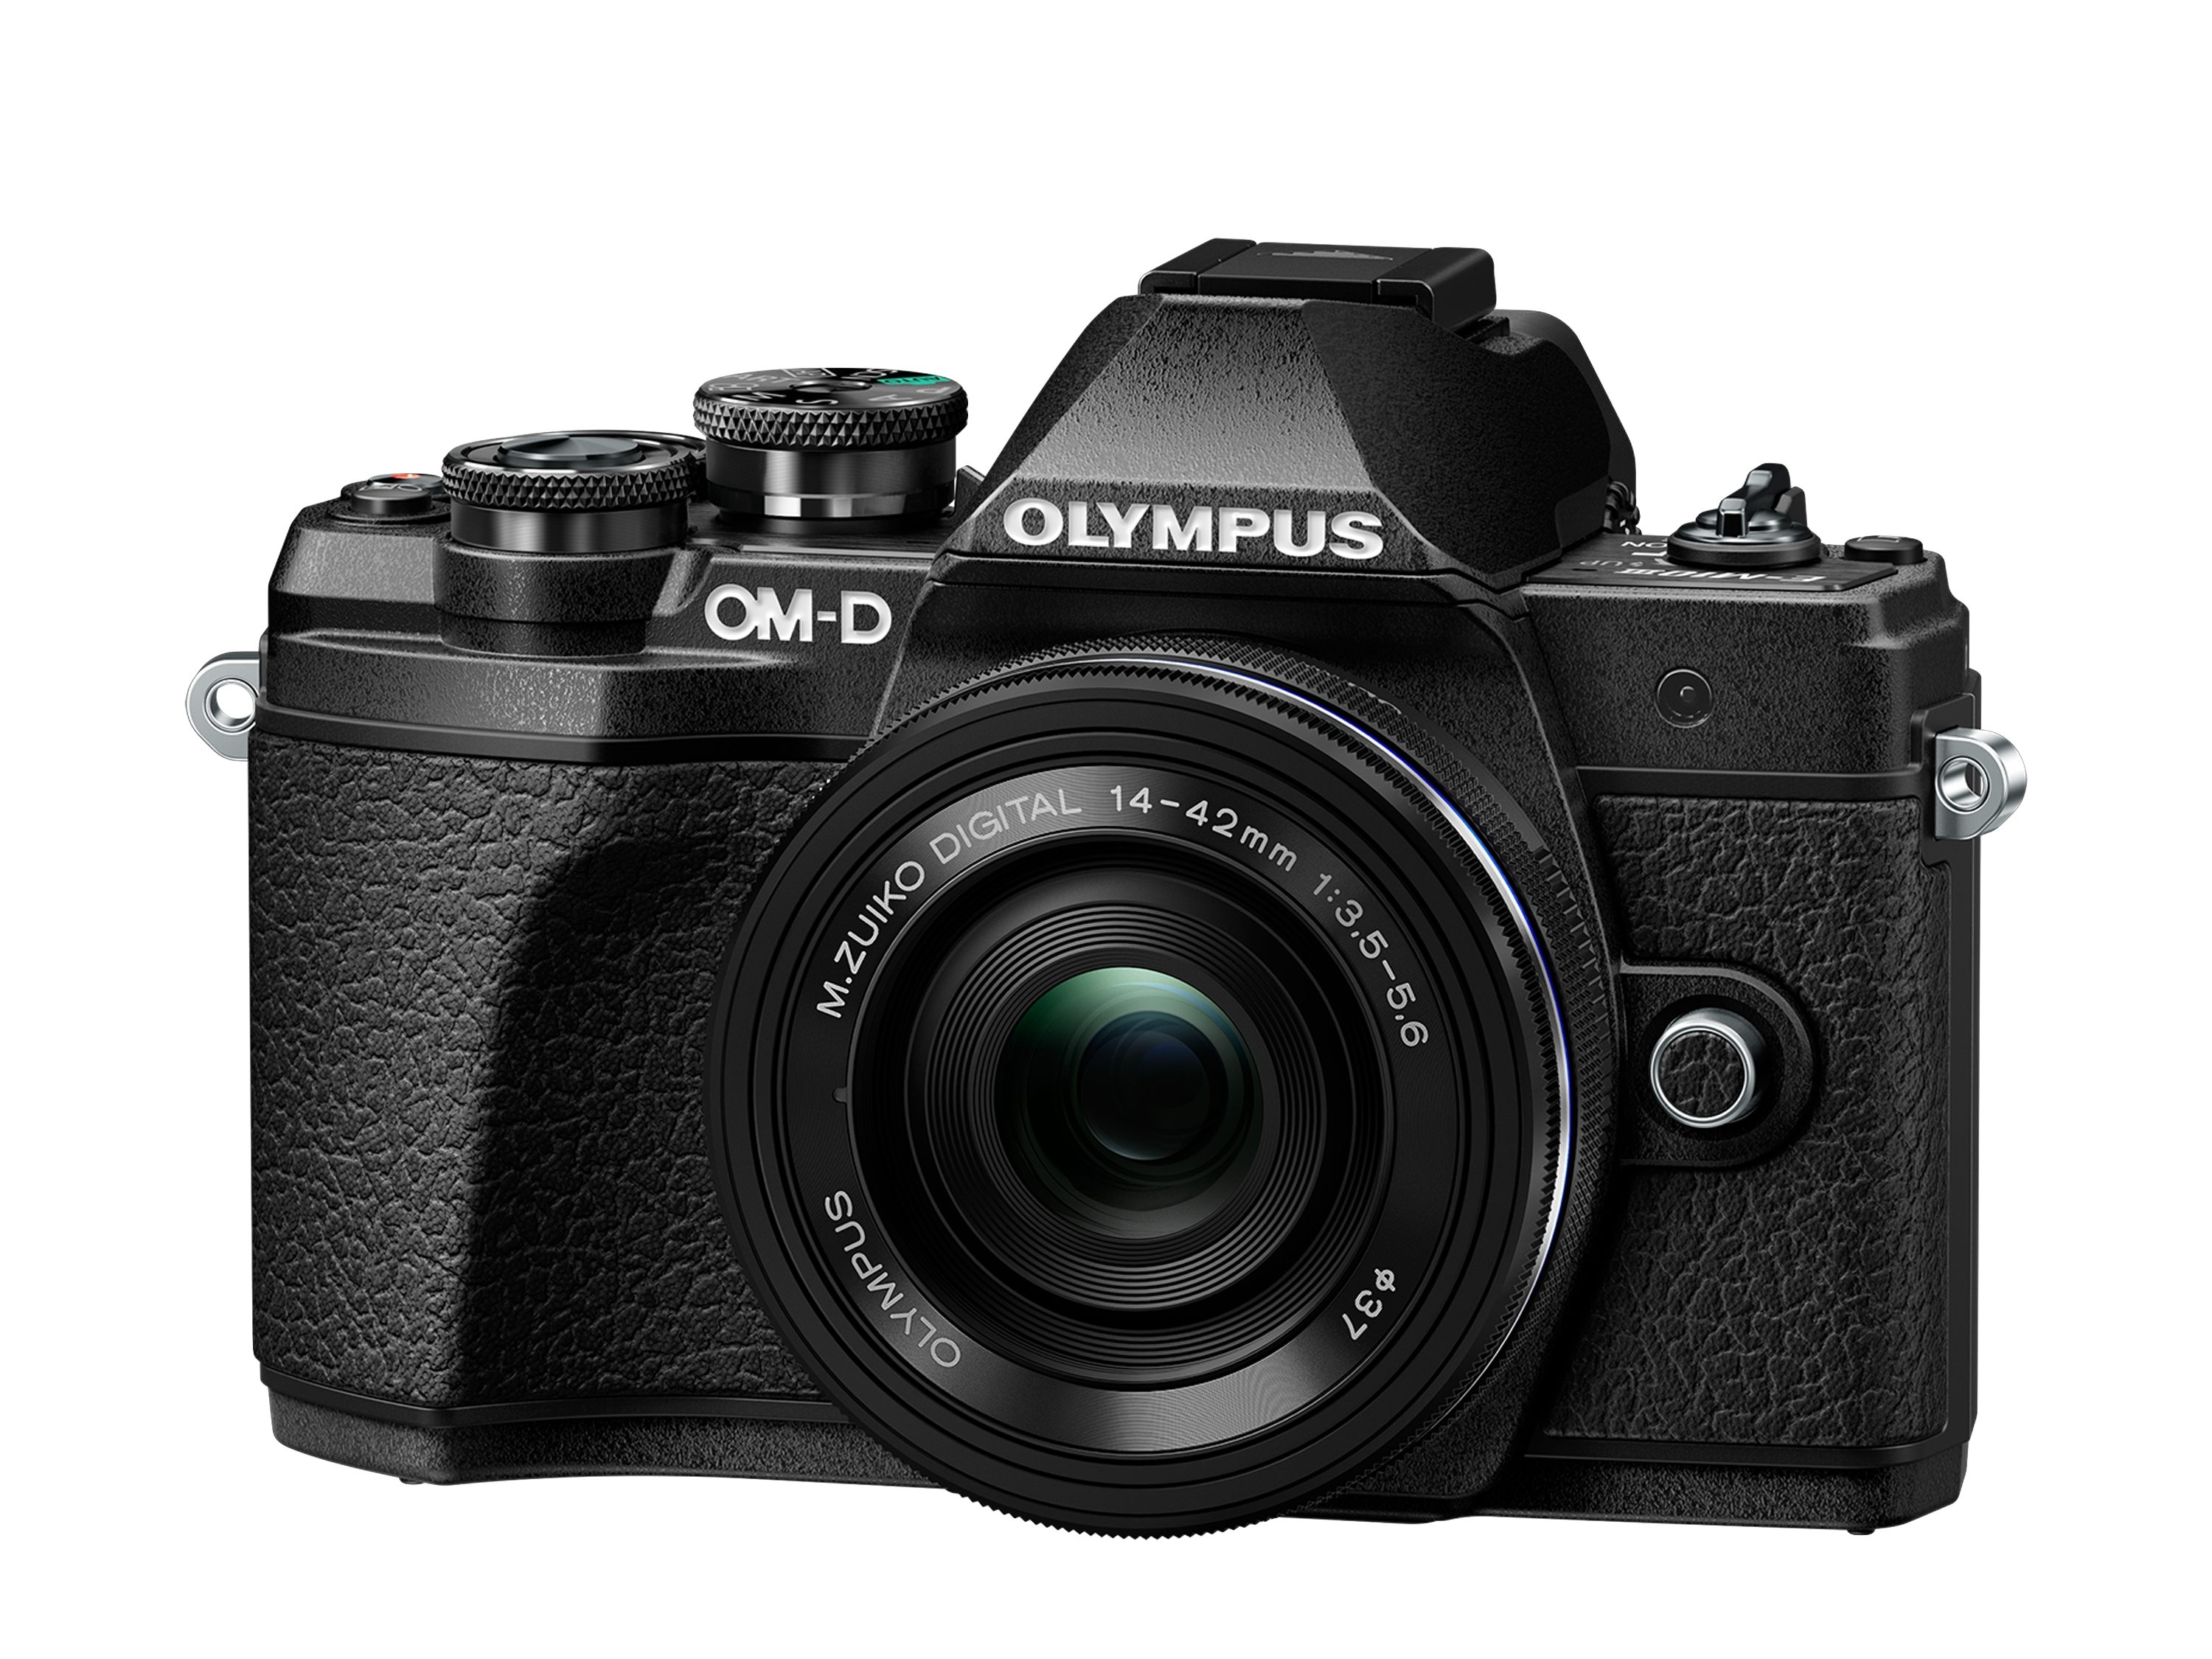 Фотоаппарат Olympus OM-D E-M10 Mark III Pancake Zoom Kit с 14-42 EZ черный (V207072BE000) фото